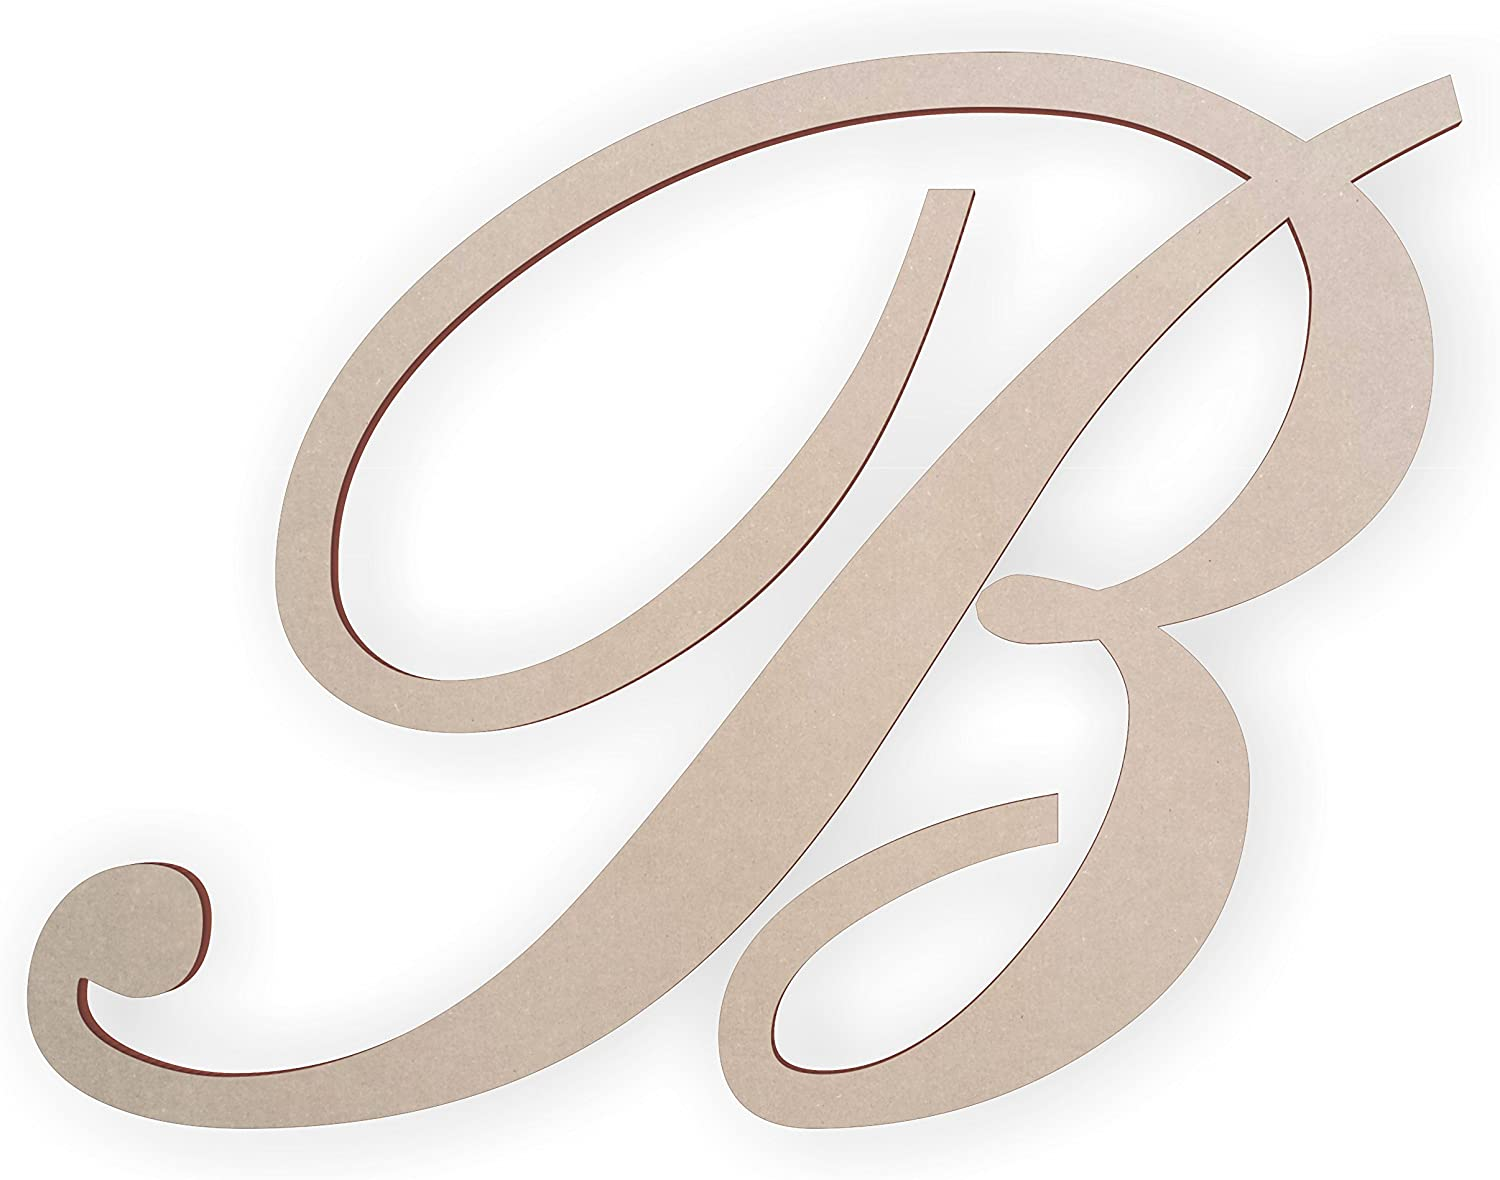 Jess and Gorgeous Jessica Wooden Max 50% OFF Letter B Wall Letters Cr for